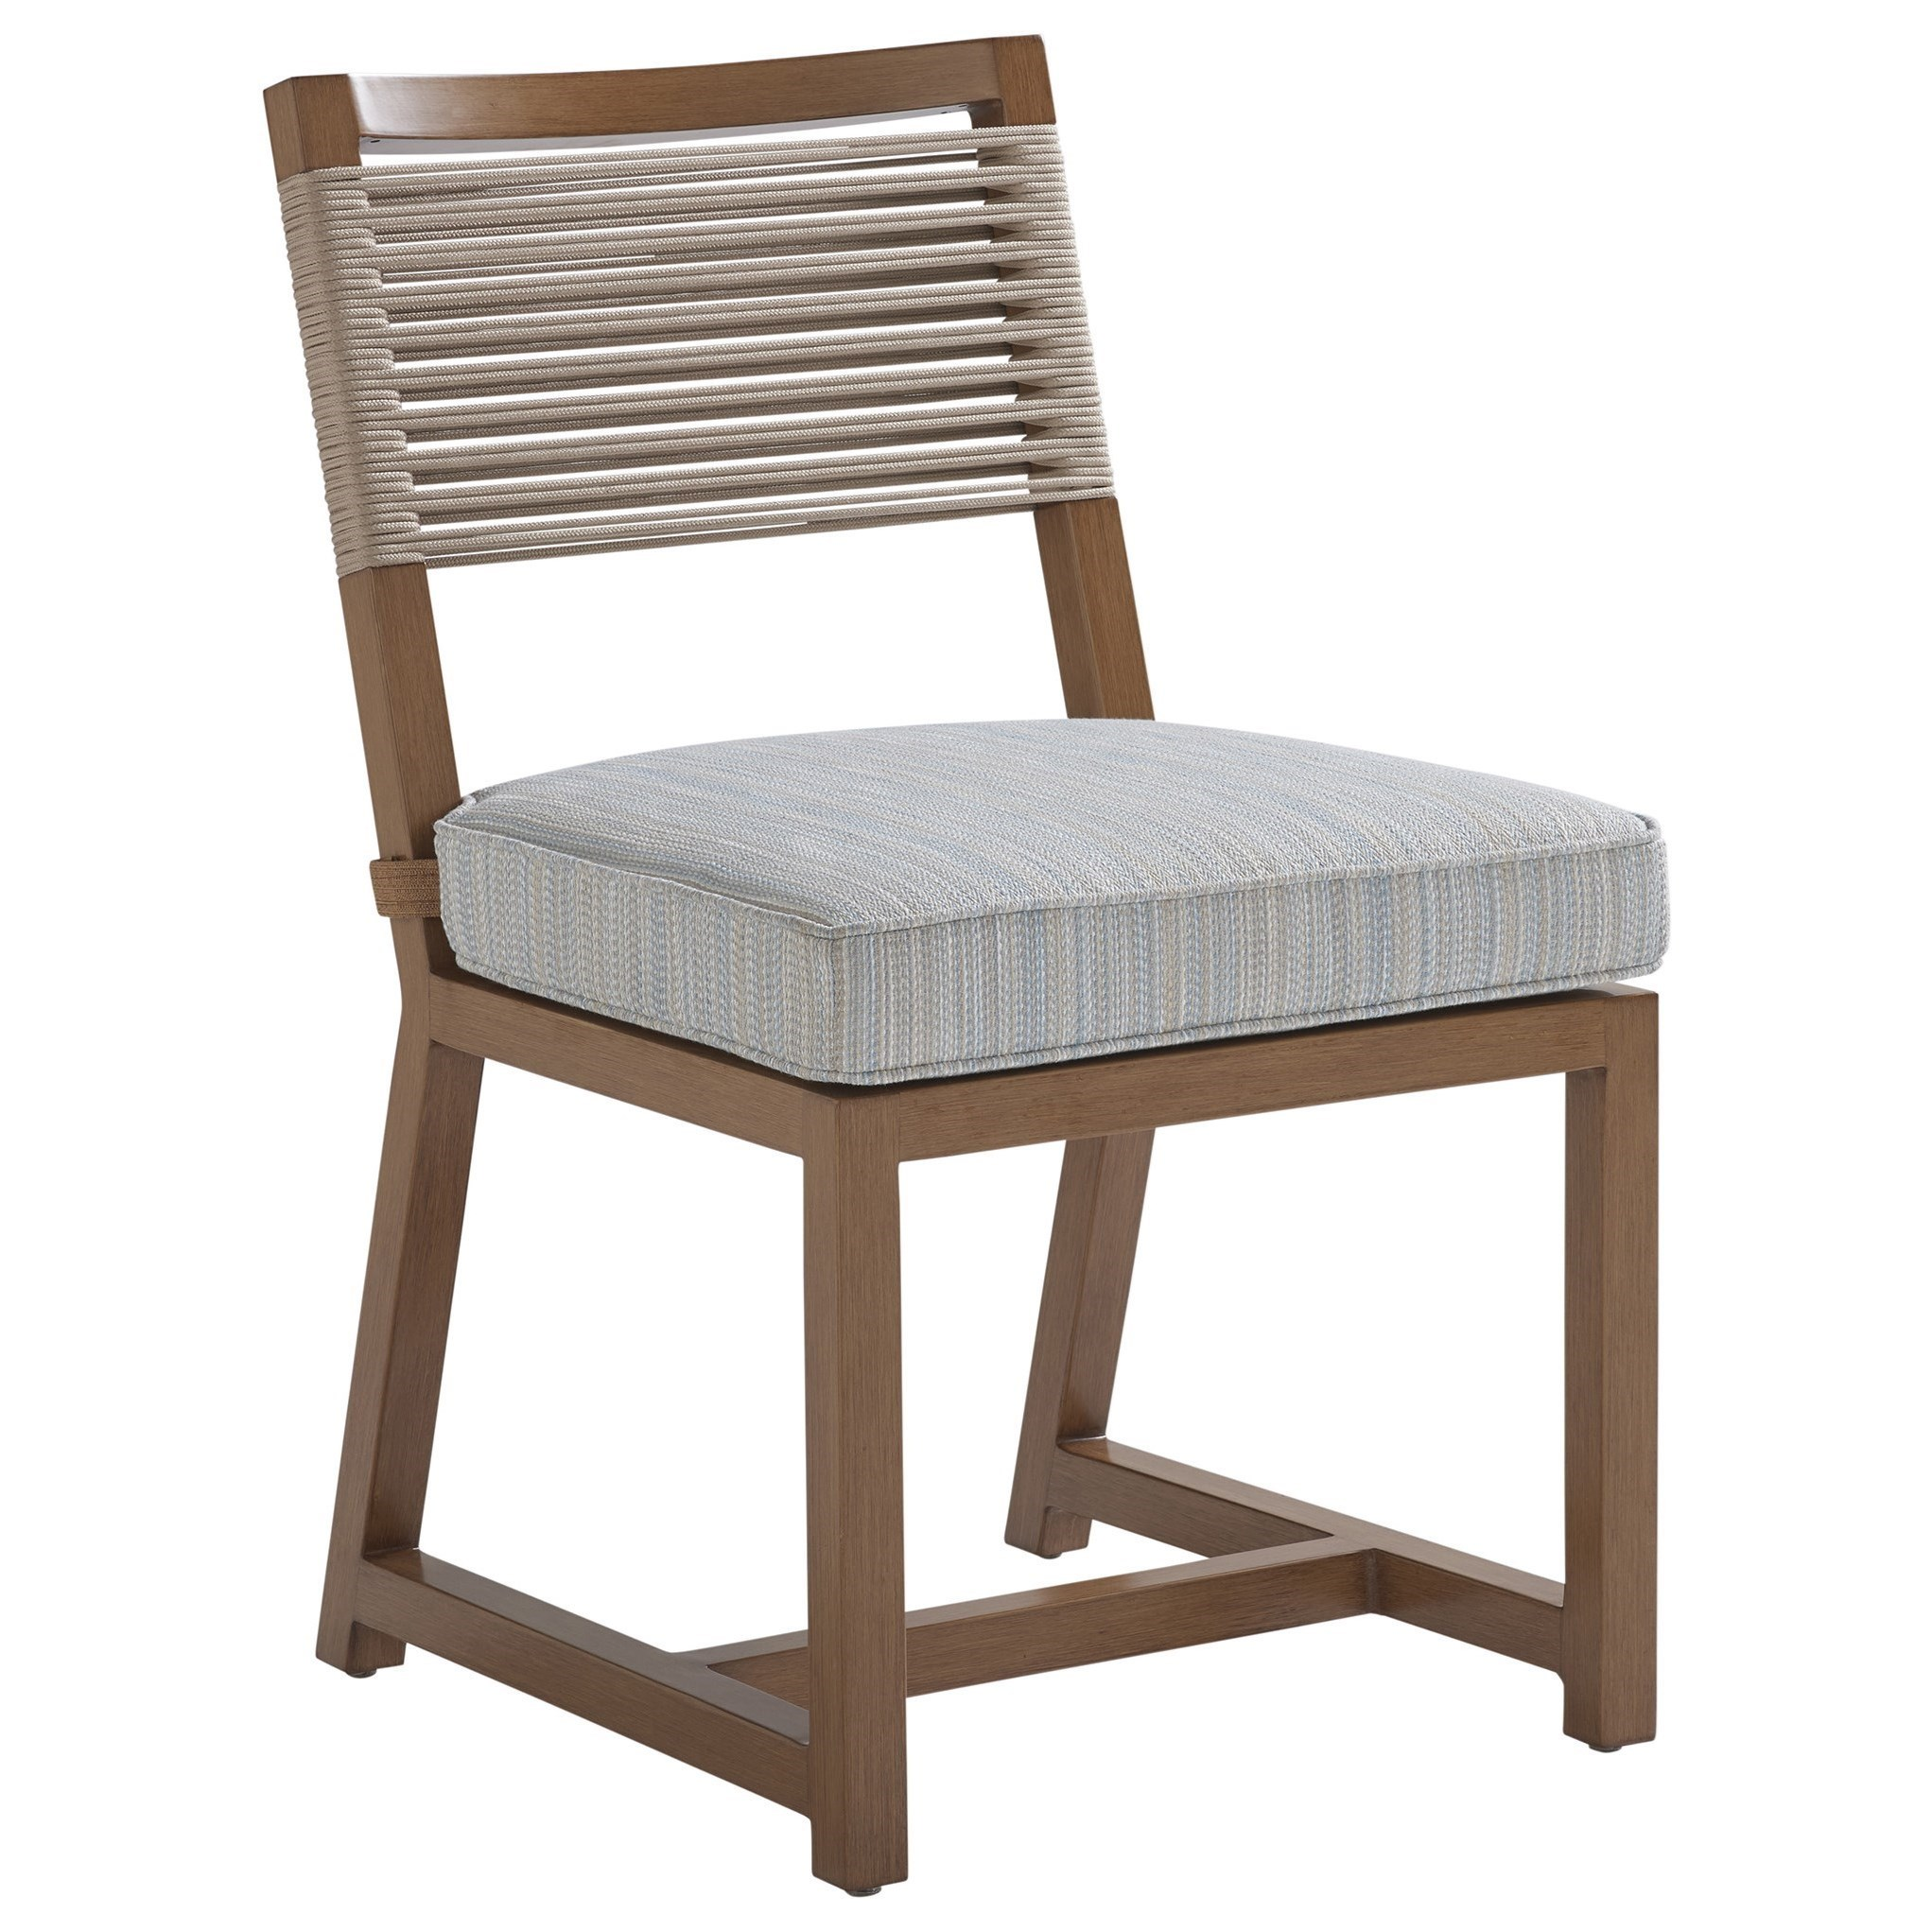 Contemporary Outdoor Dining Side Chair with Lanyard Cording